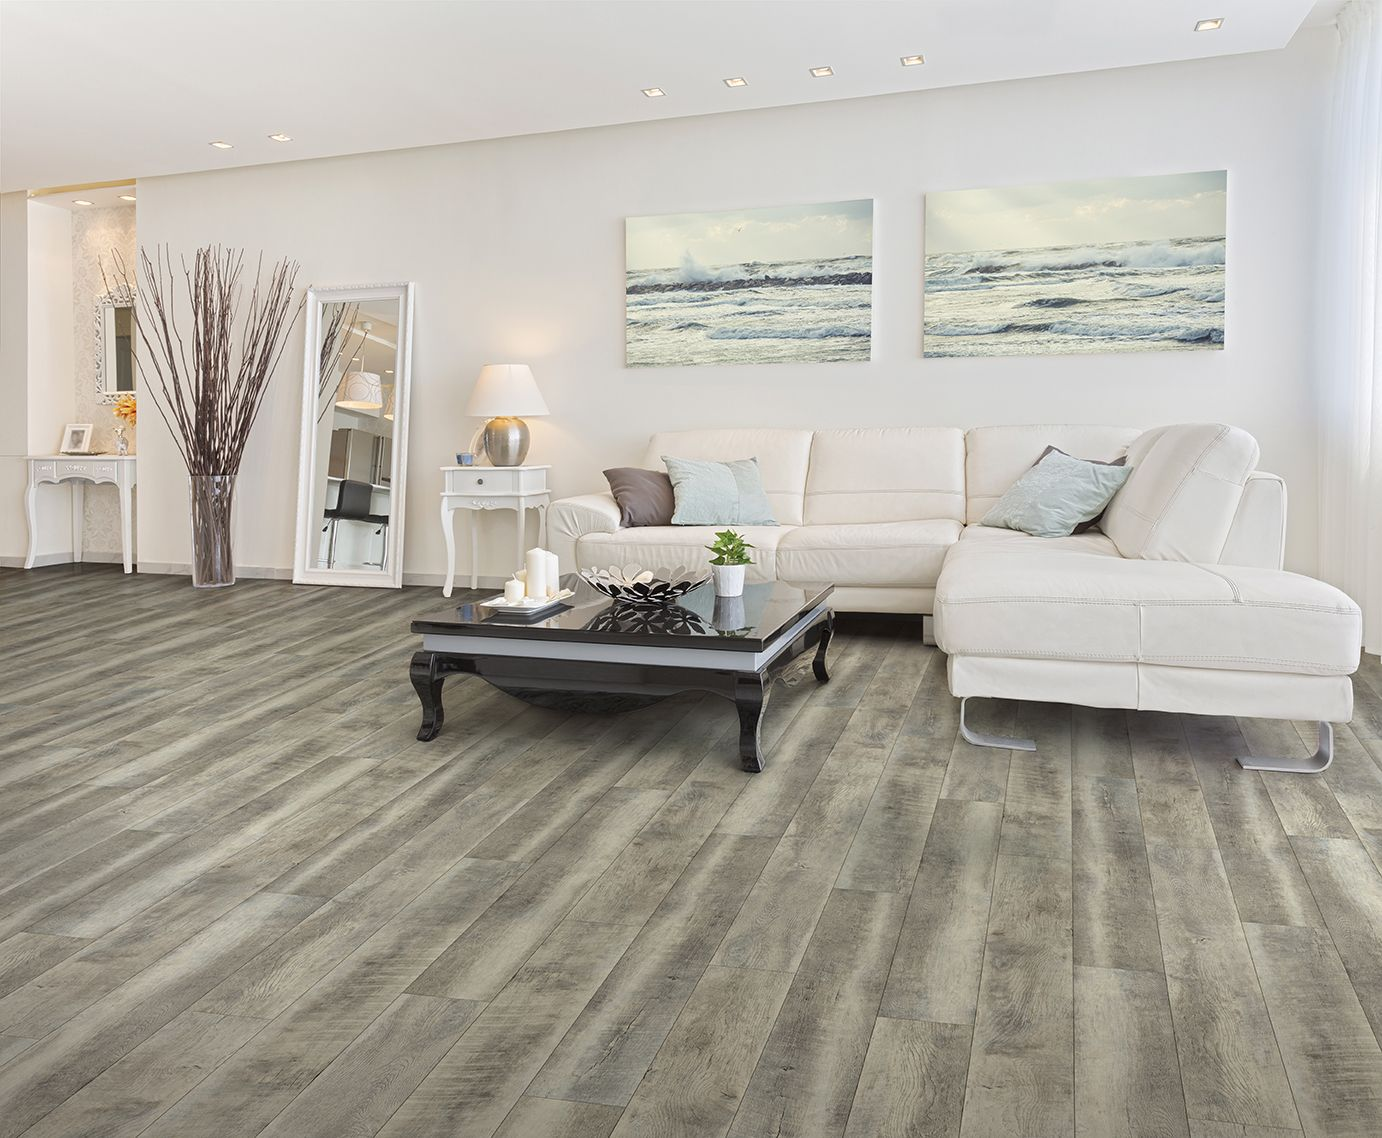 mont blanc driftwood bodega bay house remodel pinterest flooring options kitchen floors. Black Bedroom Furniture Sets. Home Design Ideas